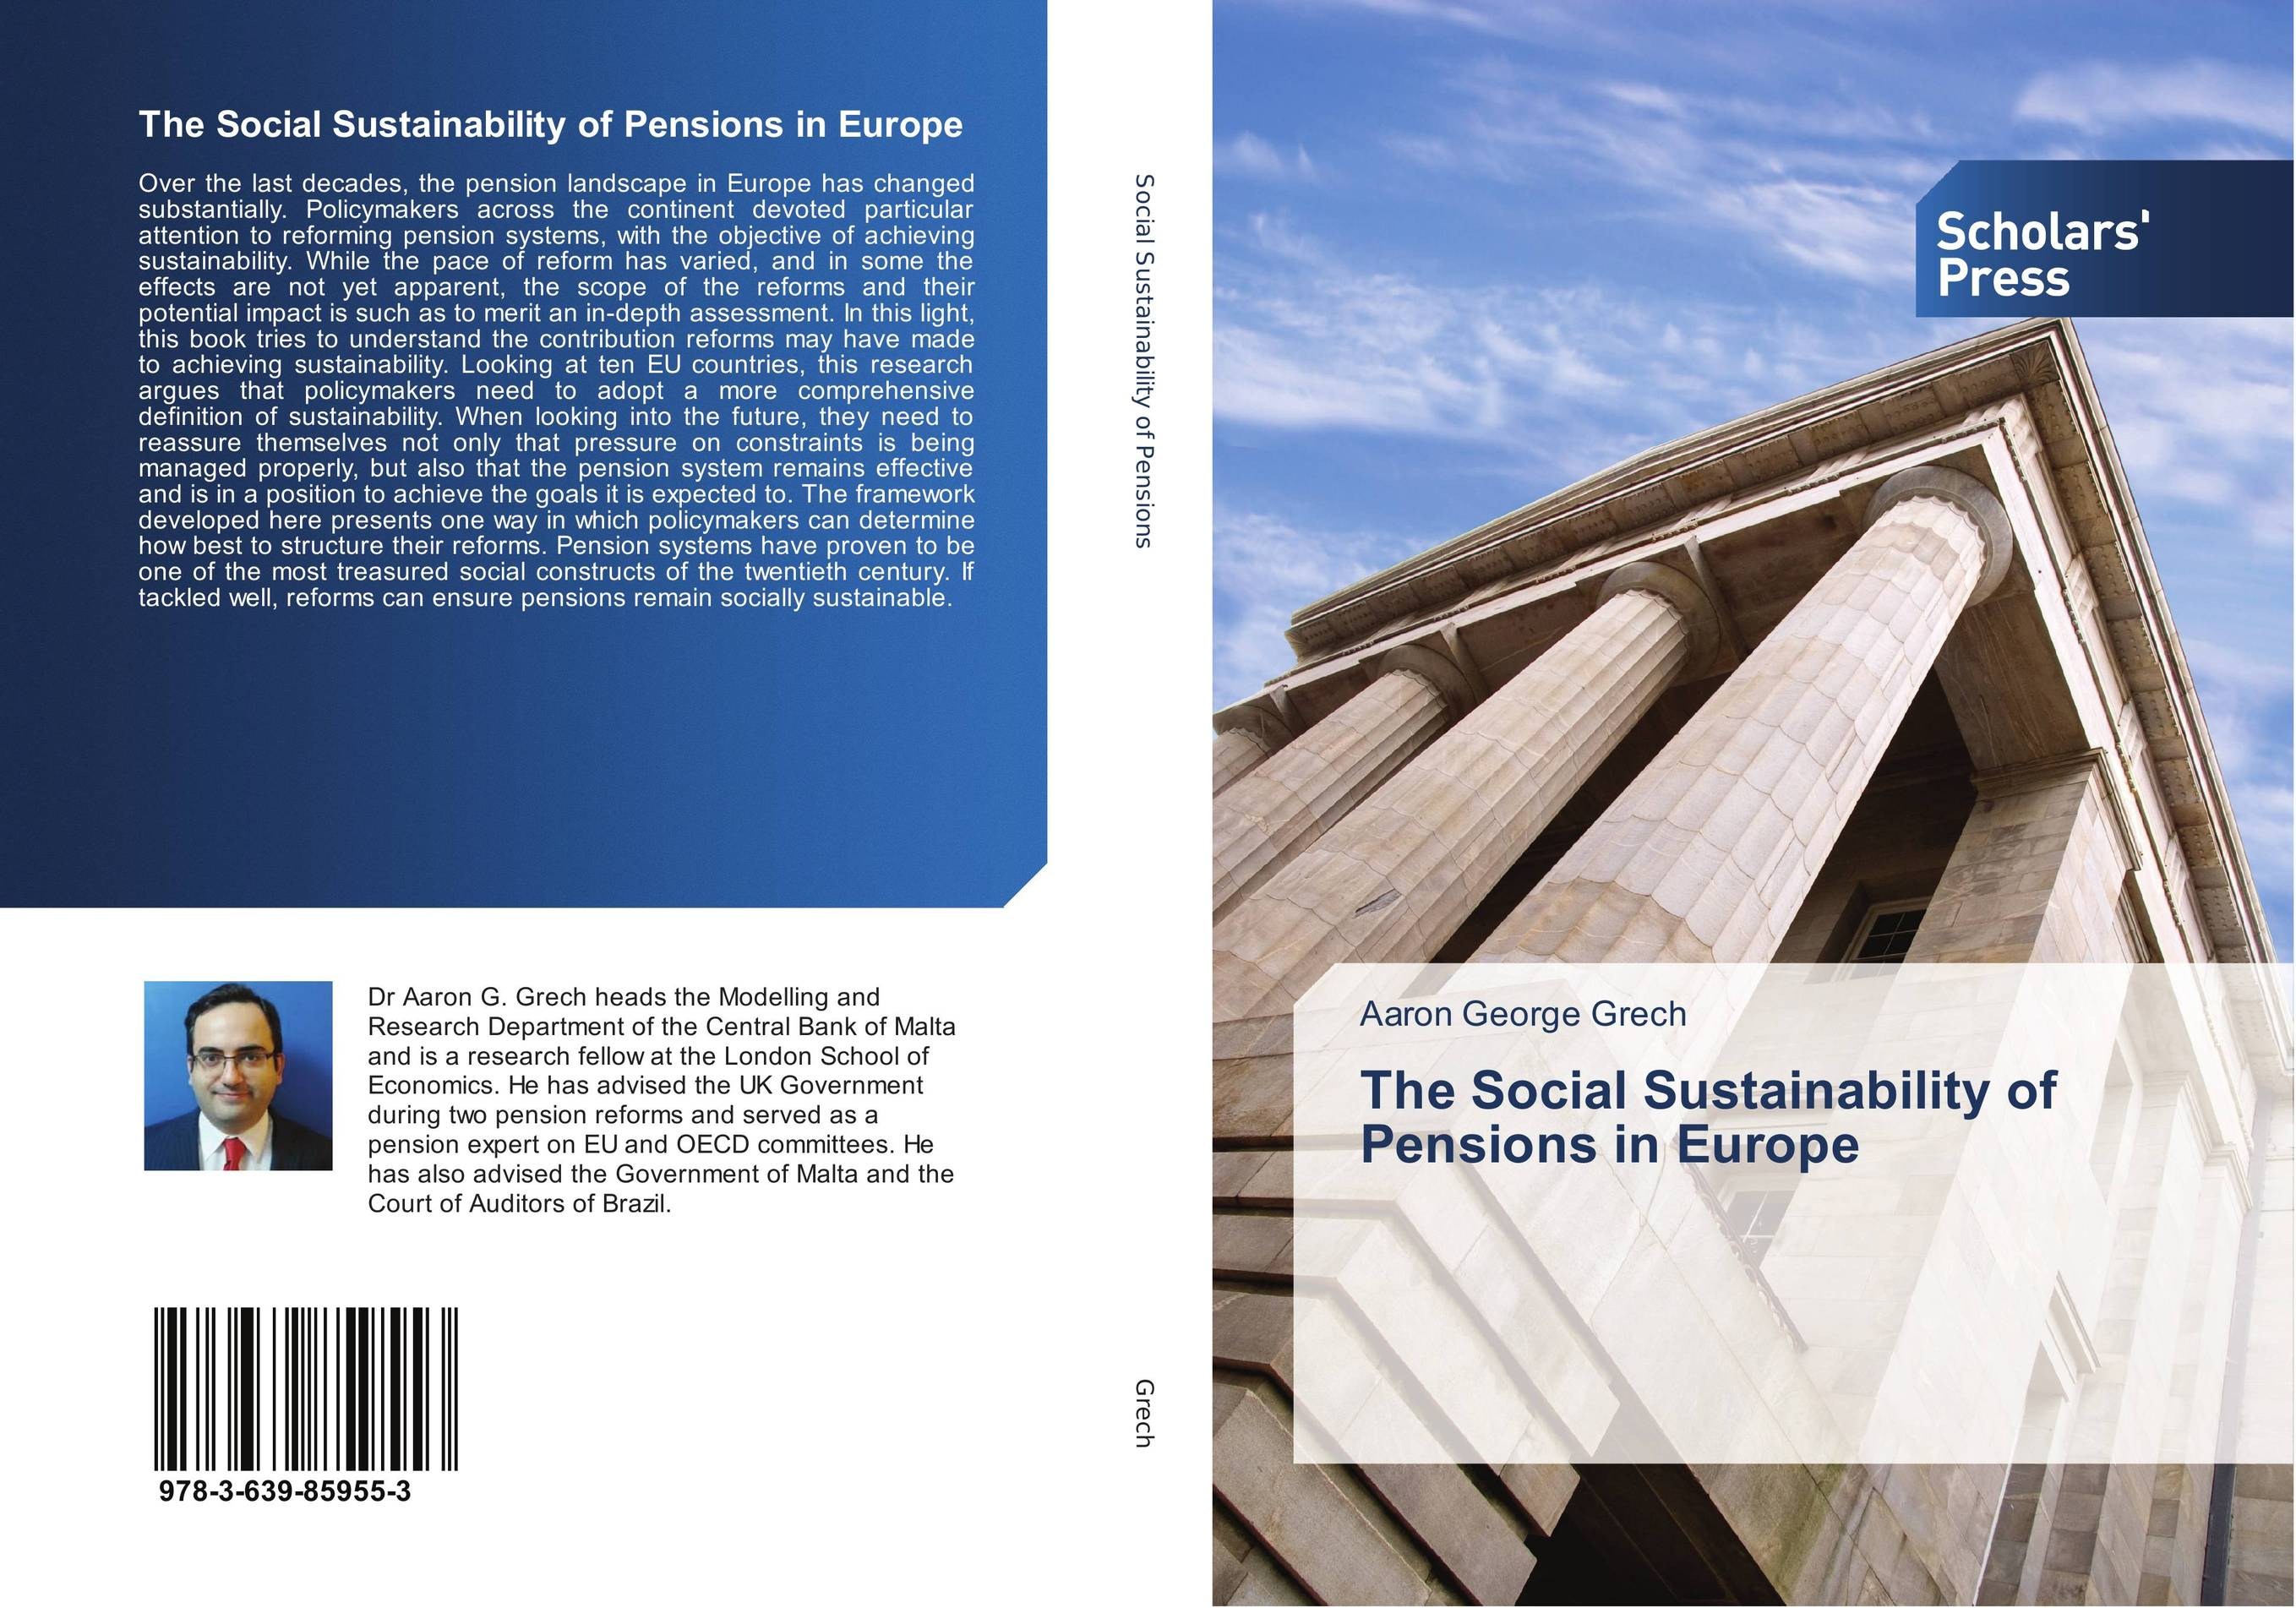 The Social Sustainability of Pensions in Europe the future of europe – reform or decline